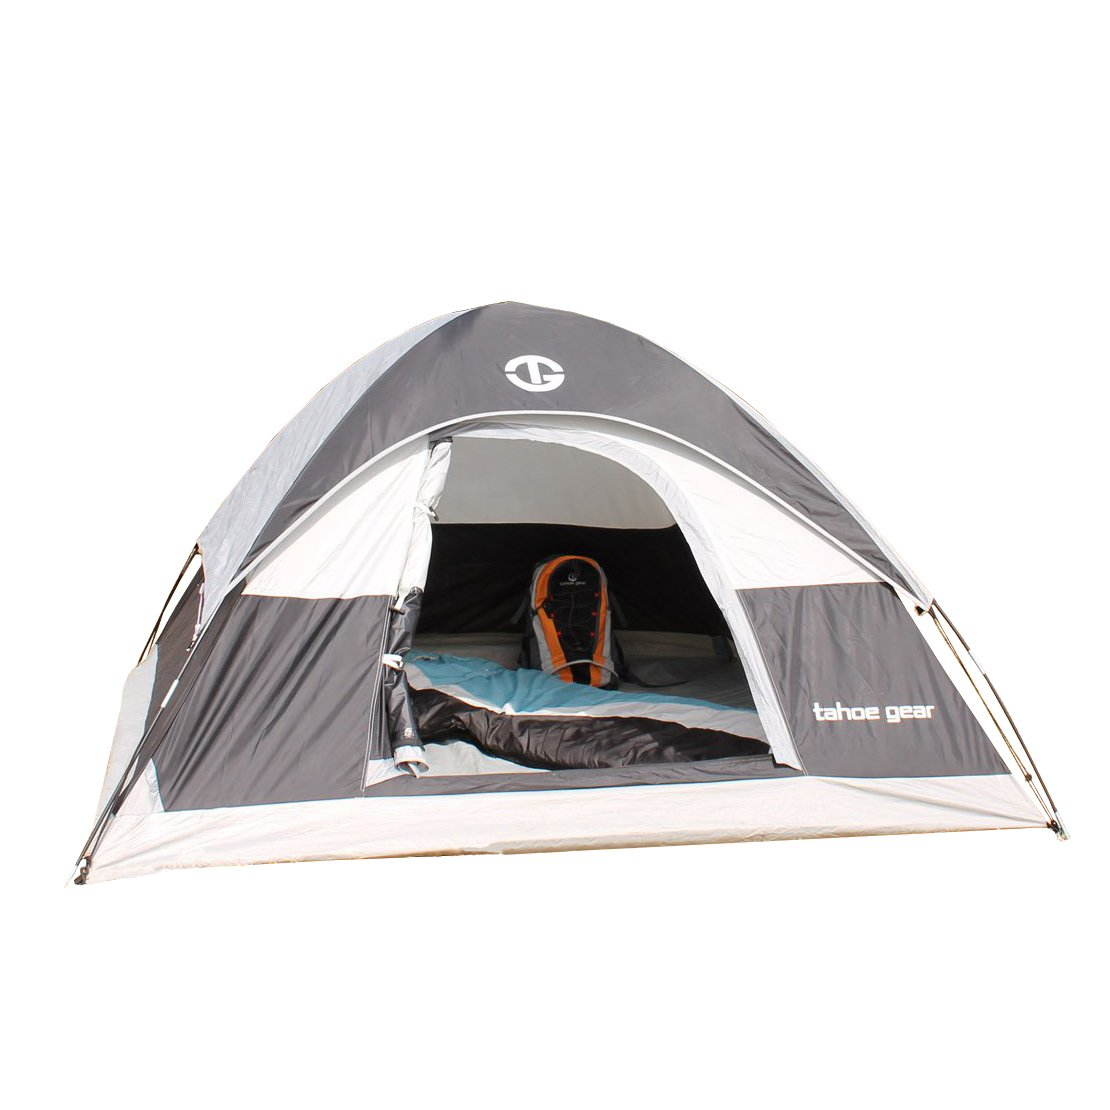 Amazon.com  Tahoe Gear Powell 3-Person 3-Season Dome C&ing Tent Black/Grey | TGT-POWELL-3  Sports u0026 Outdoors  sc 1 st  Amazon.com & Amazon.com : Tahoe Gear Powell 3-Person 3-Season Dome Camping Tent ...